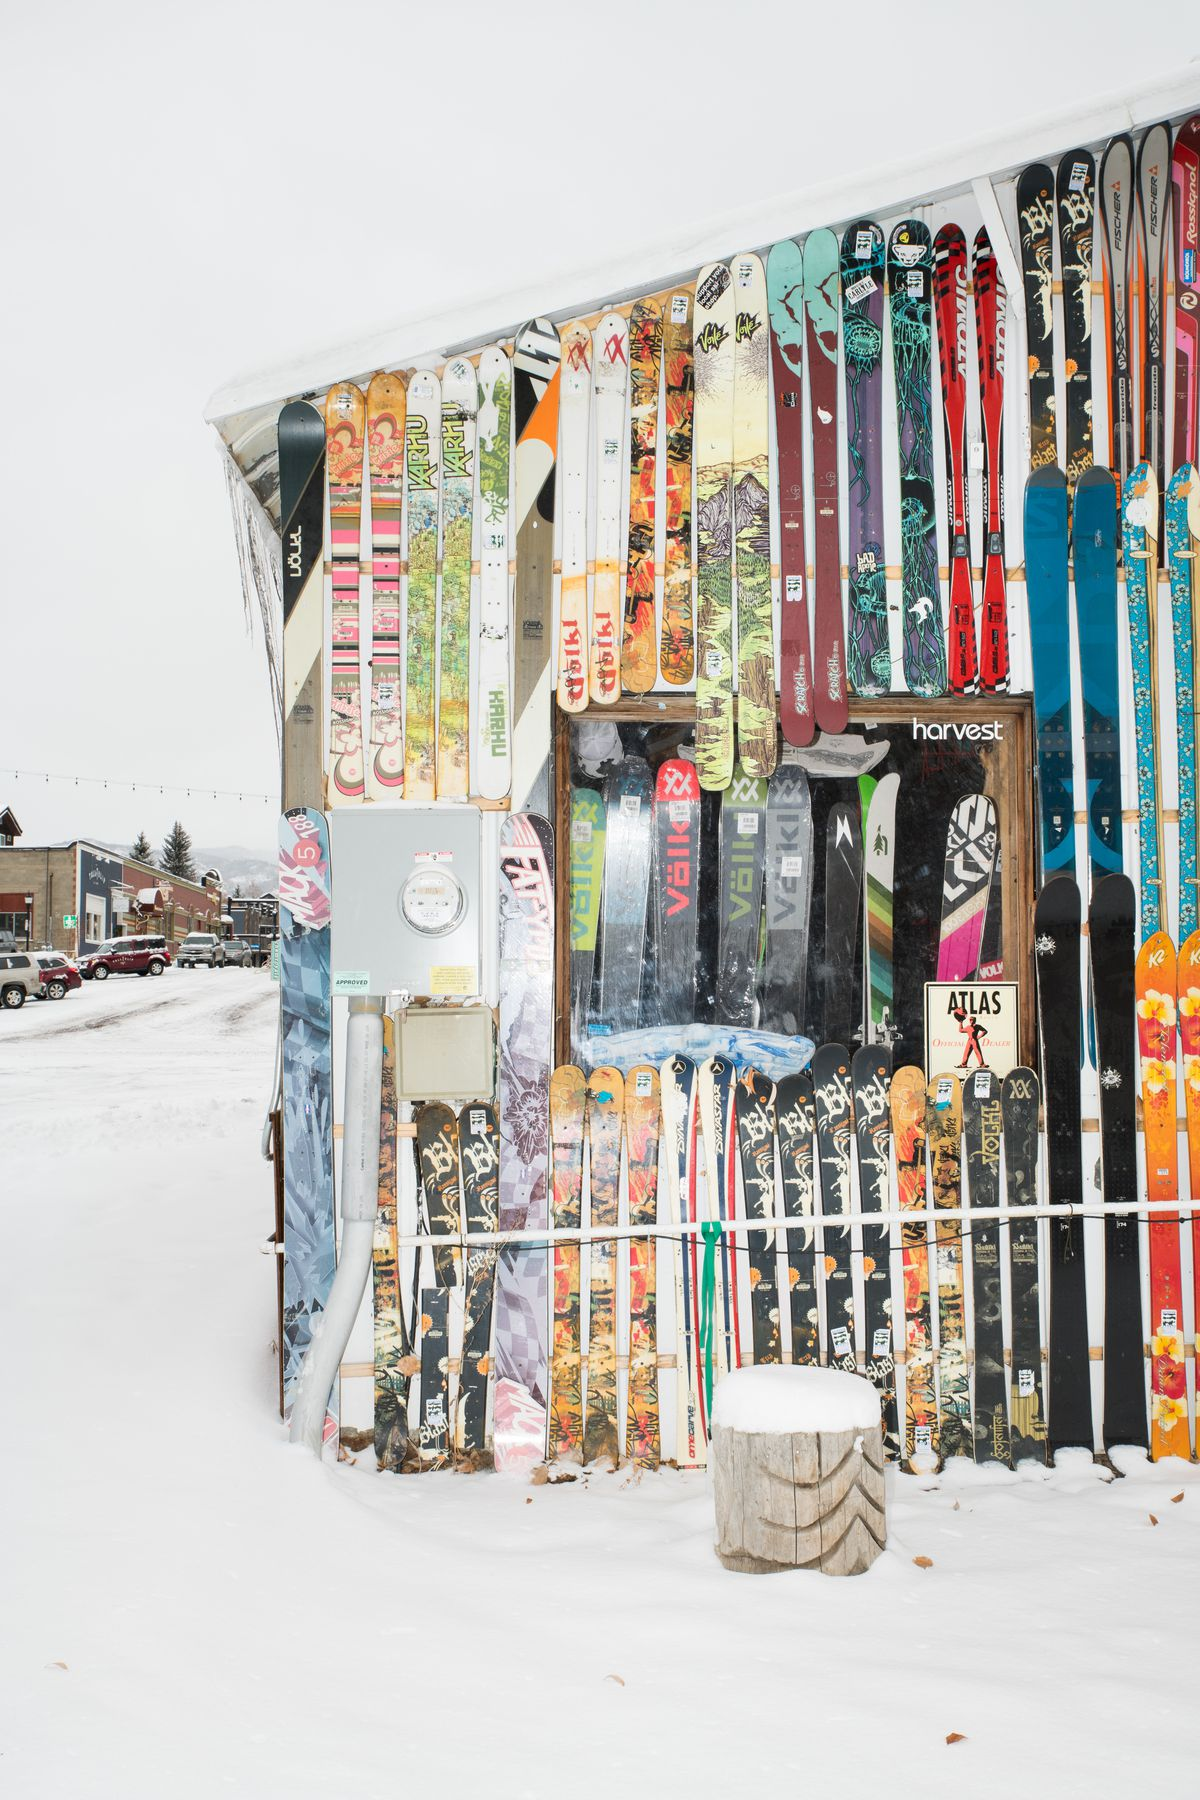 The side of a building covered in skis.